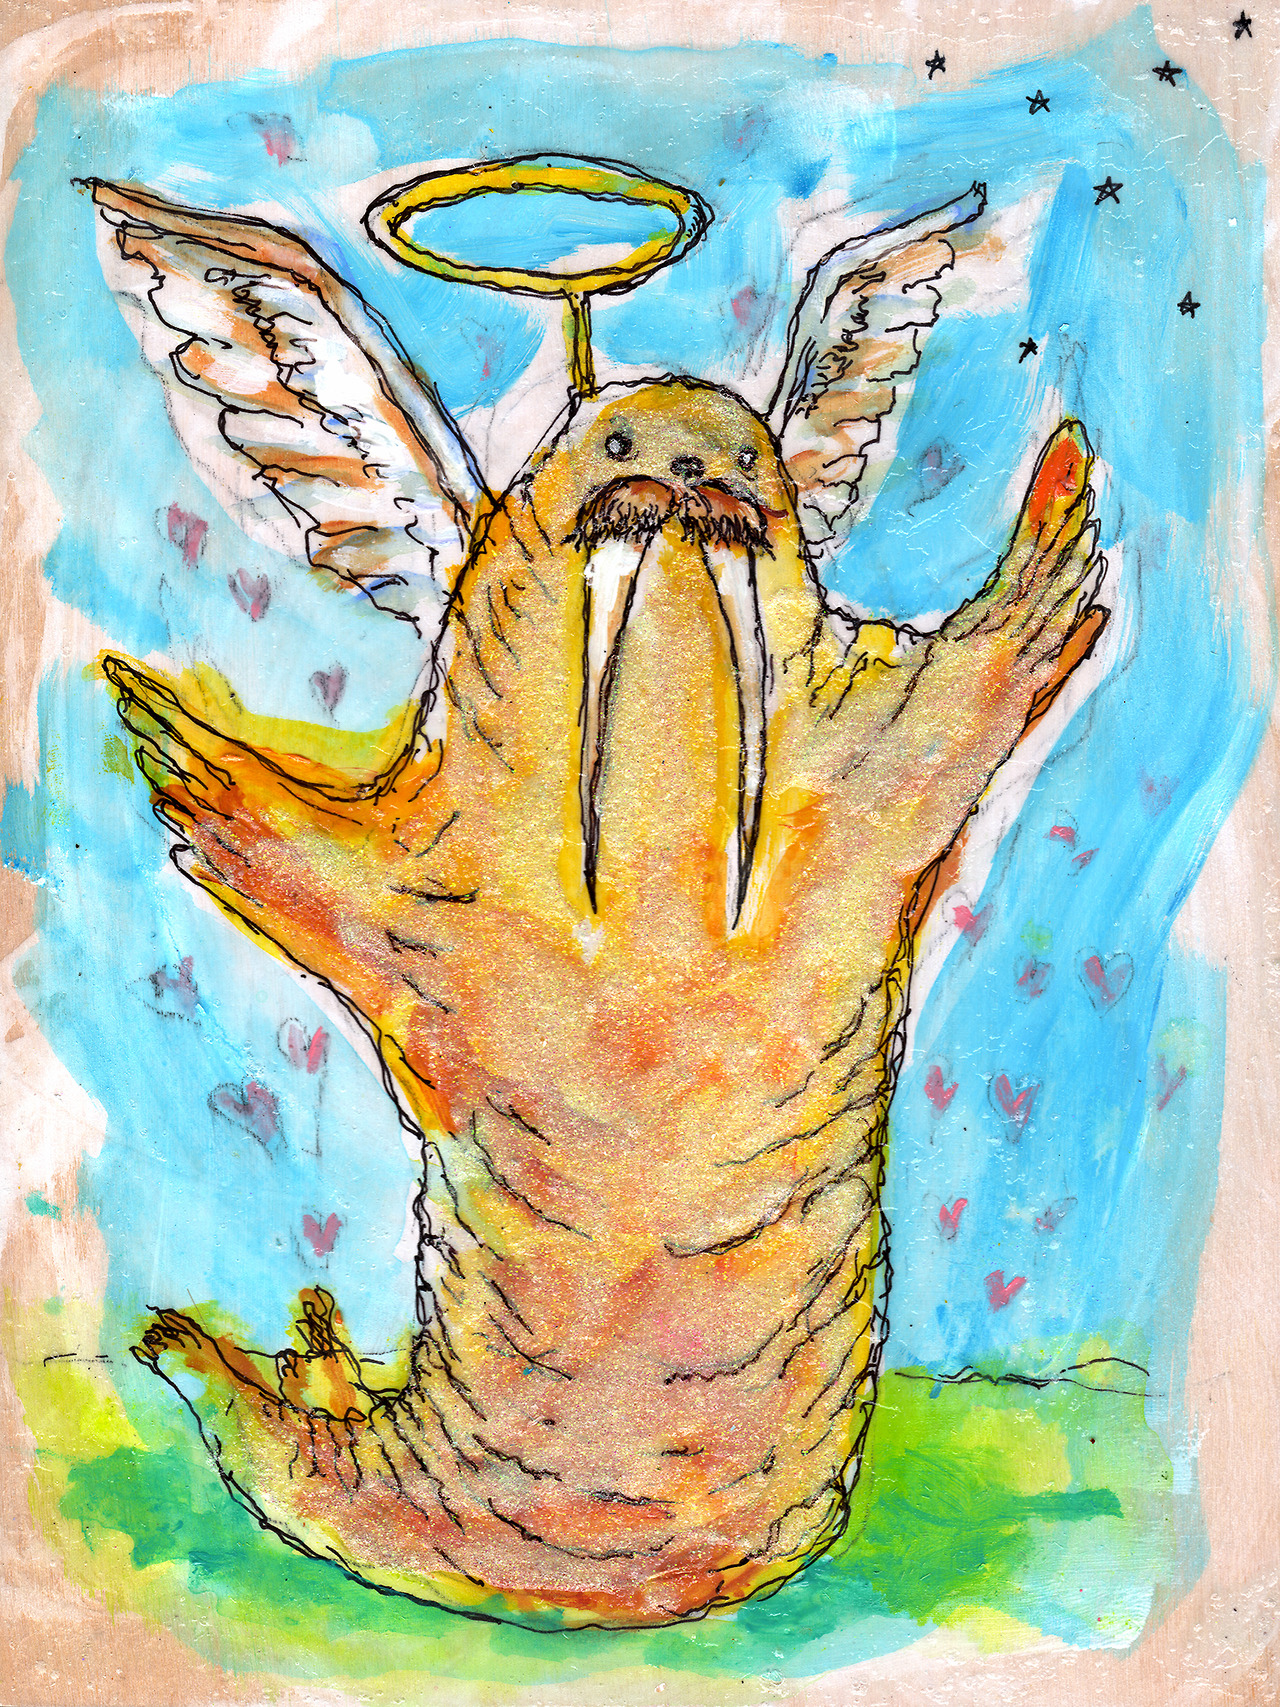 11/27/13 -  The Golden Calf.    It's the holidays. The time for glitter, gold, shopping, and walruses.   3 days left on the kickstarter - http://www.kickstarter.com/projects/taylorwinder/the-art-book-of-the-year